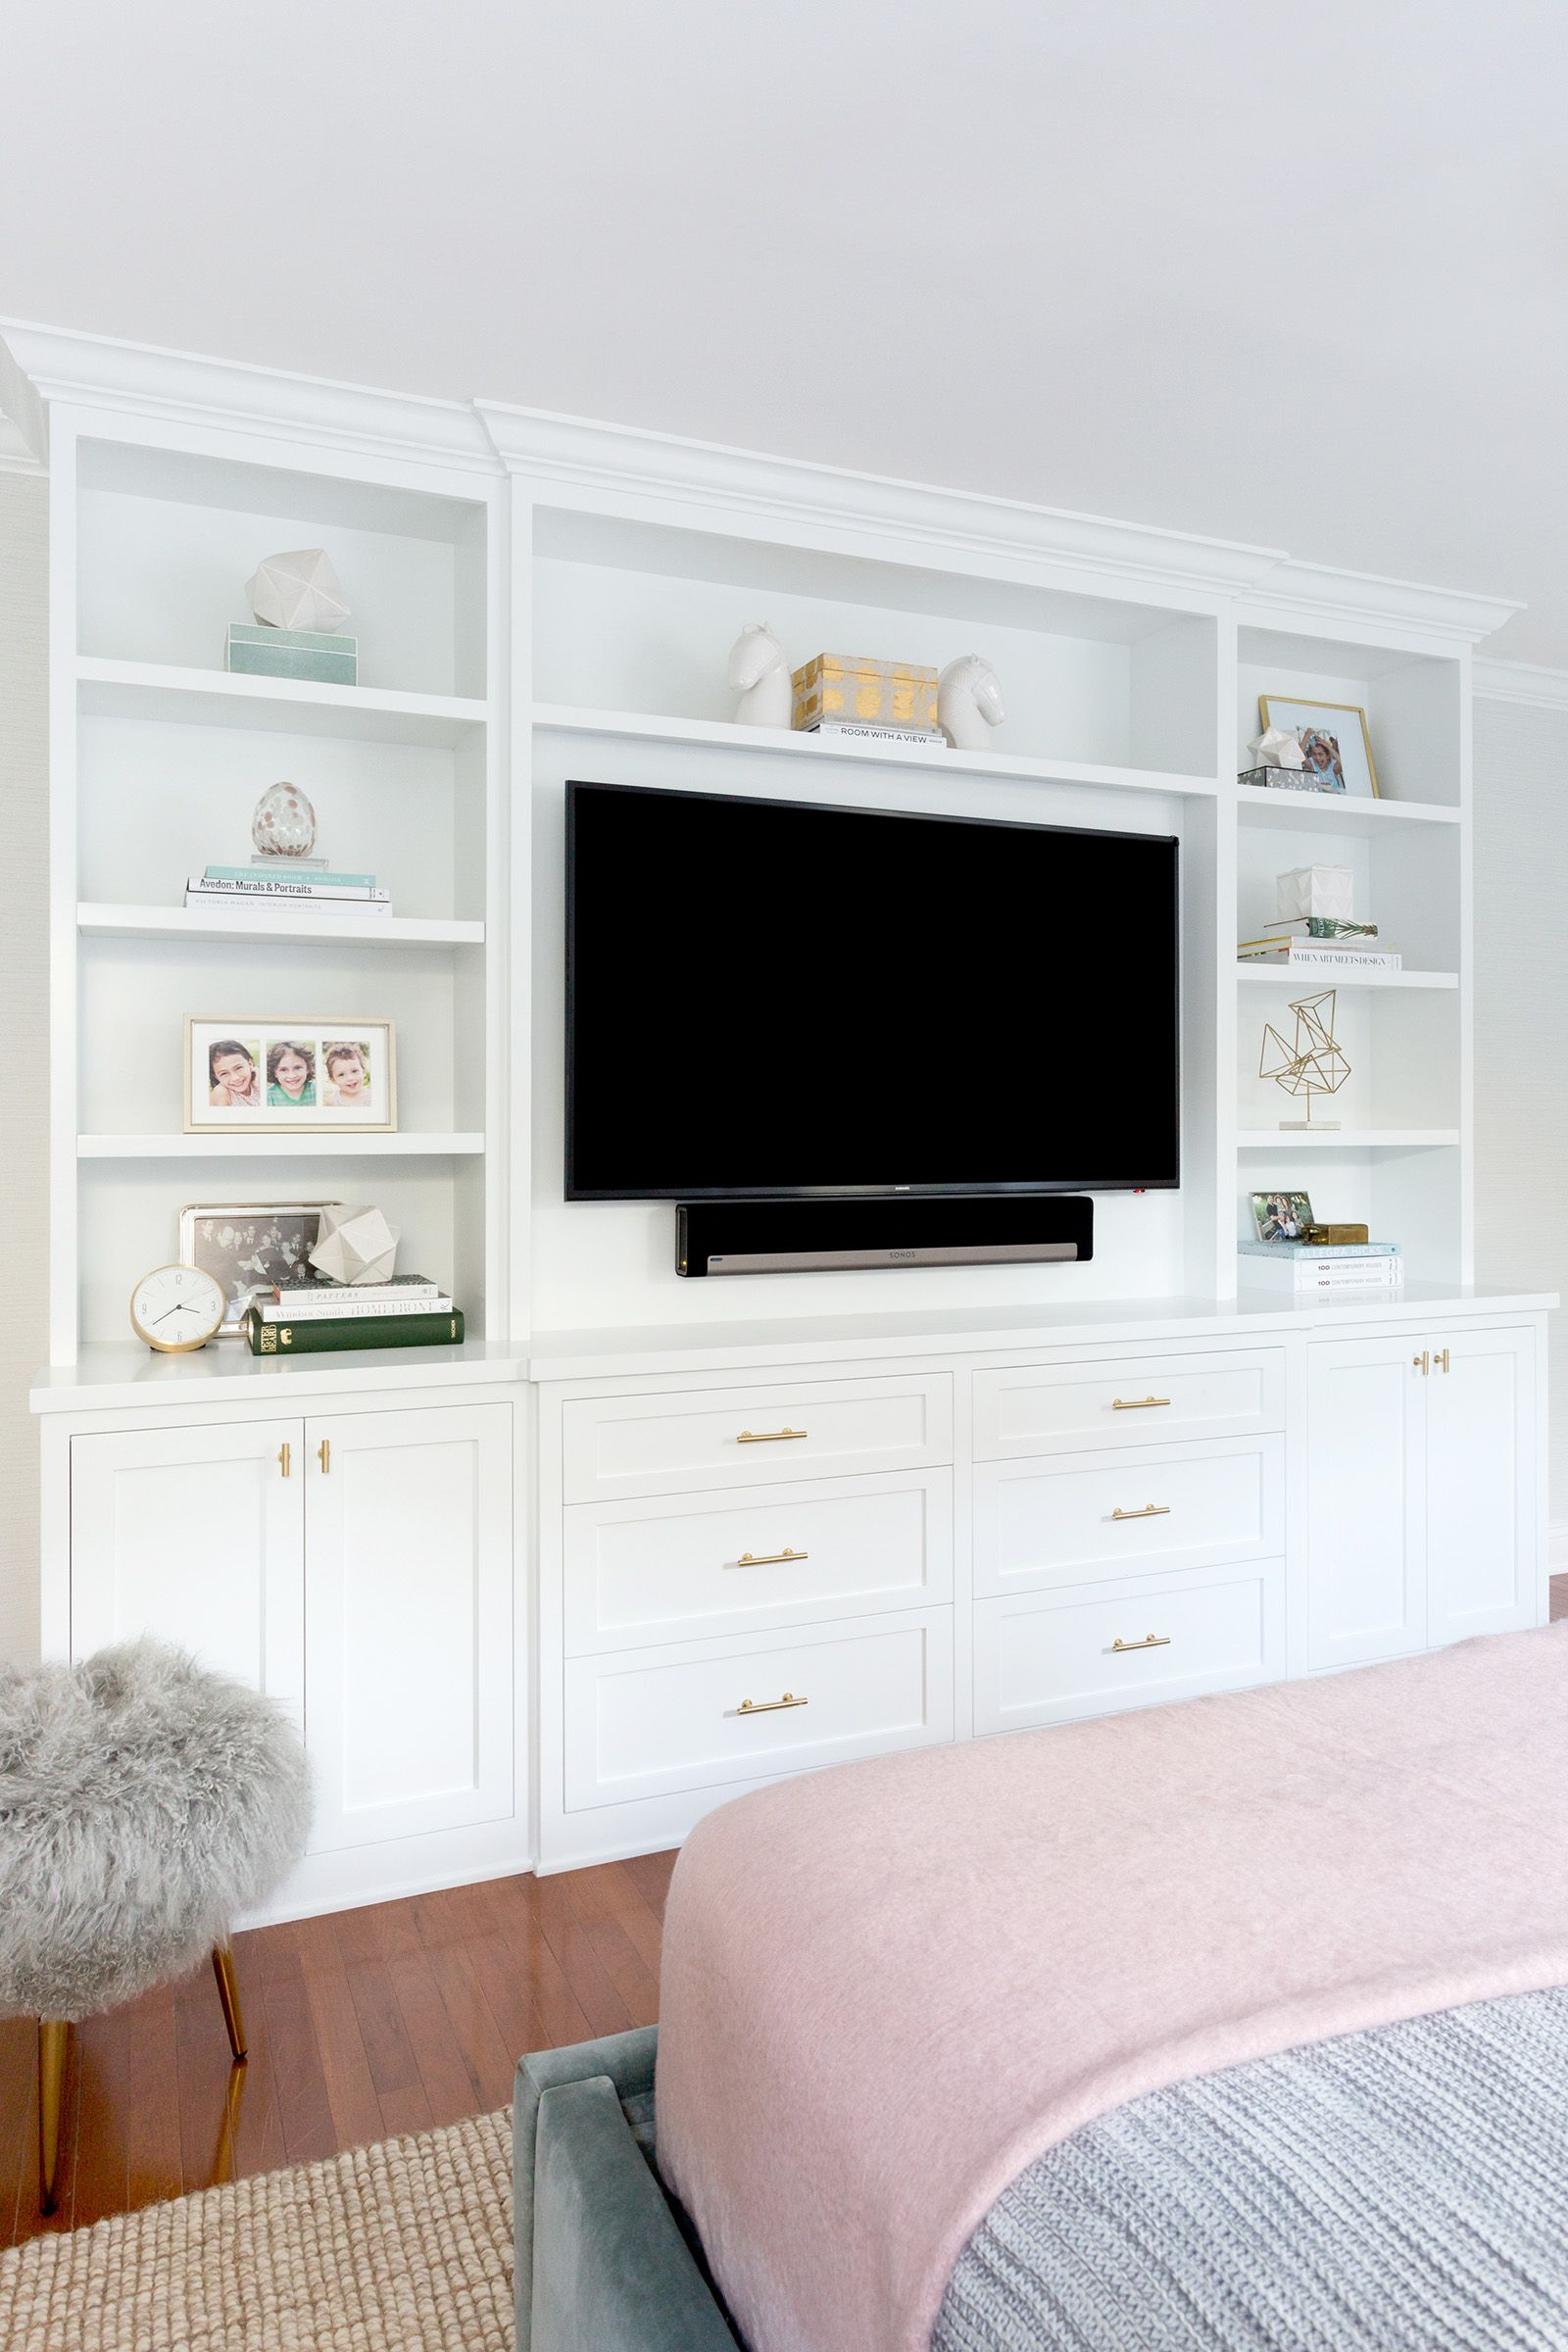 Built In Media Cabinet In Bedroom With Open Shelves And Lower Cabinets And Drawers Jenn Feldma Bedroom Wall Units Built In Bedroom Cabinets Bedroom Built Ins